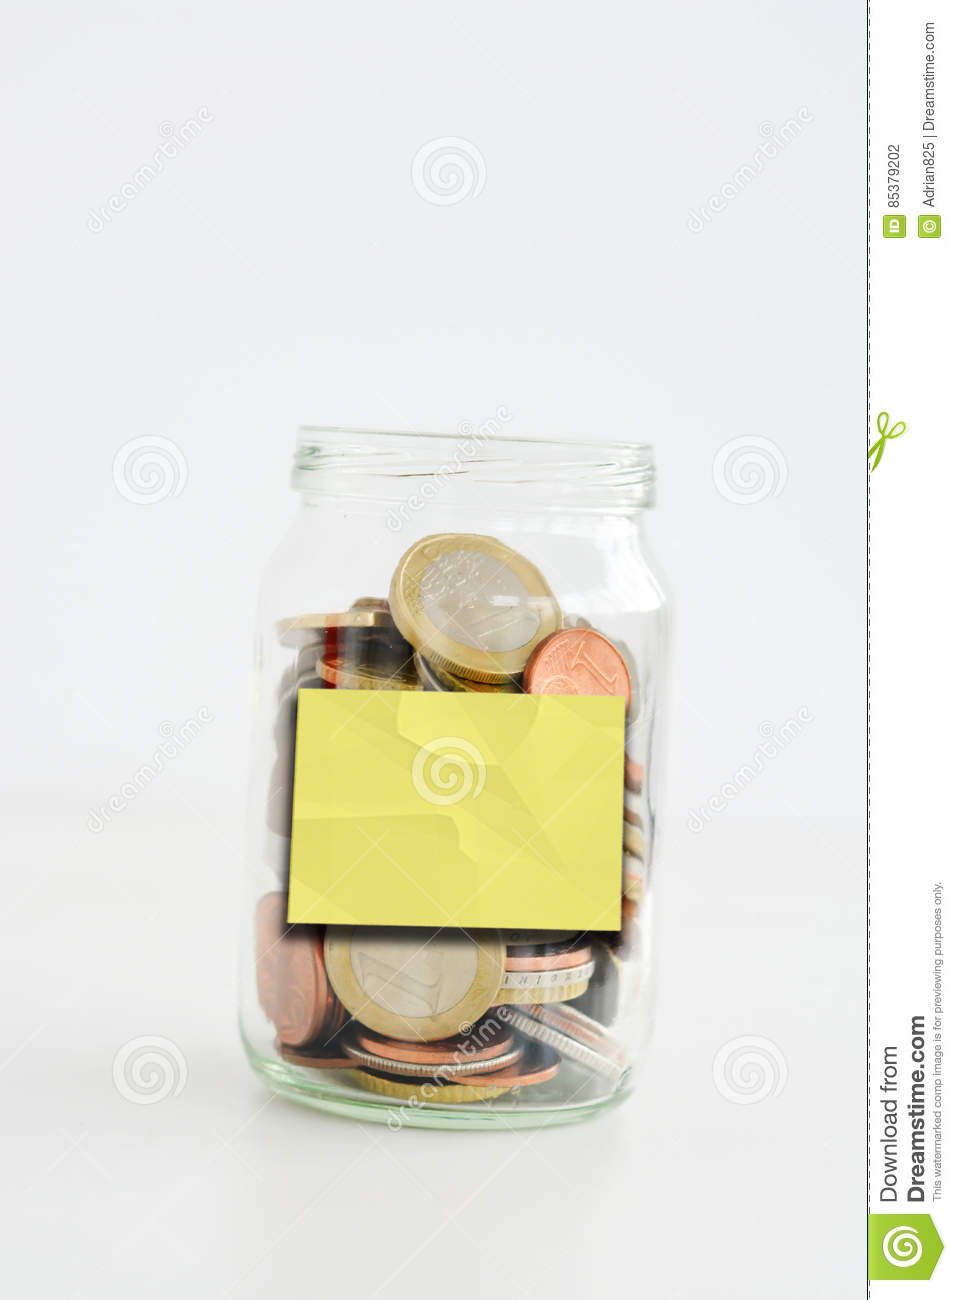 savings jar full of coins isolated on white background with empty or